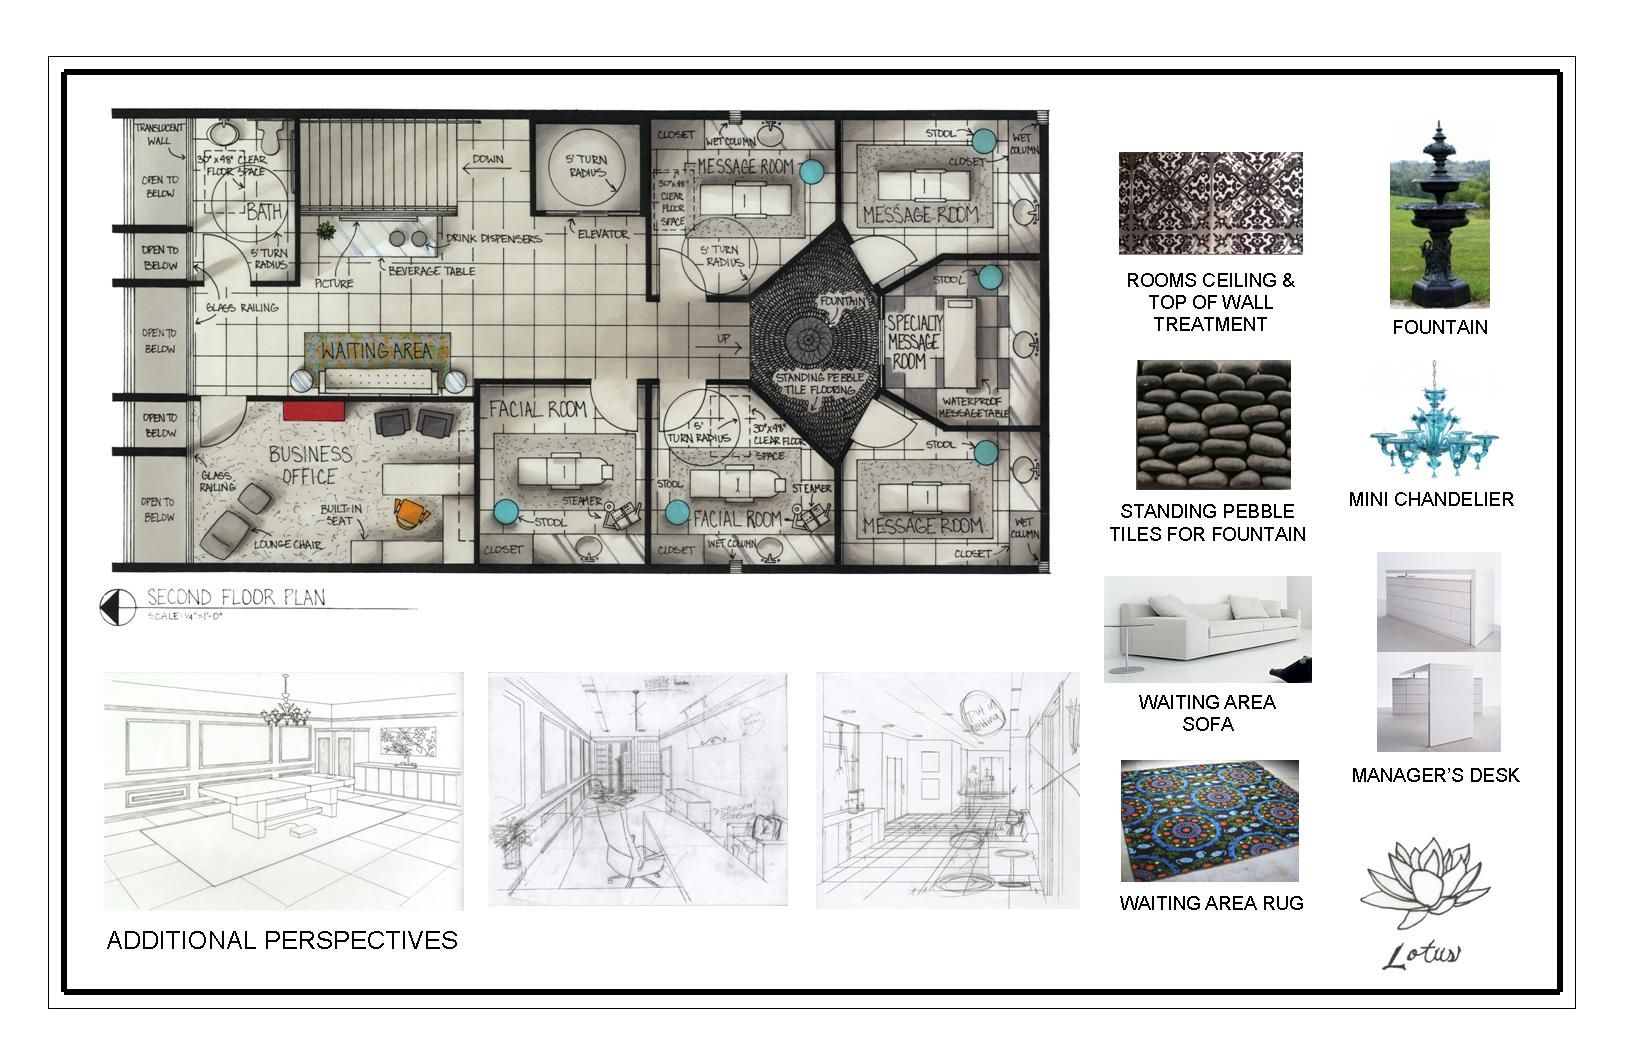 Day spa floor plans second plan materials and additional perspectives also rh pinterest